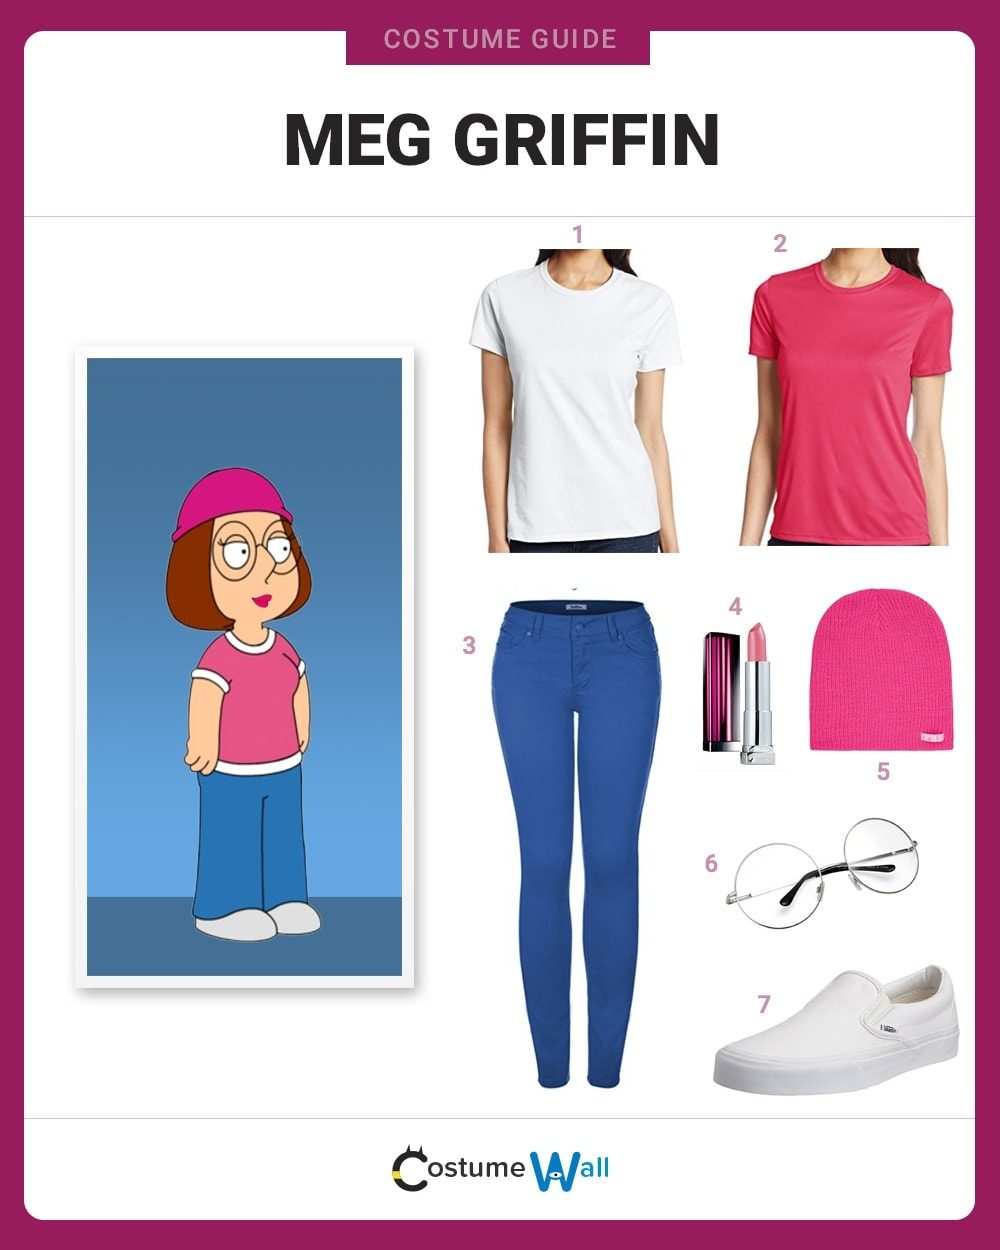 Meg Griffin Costume Guide